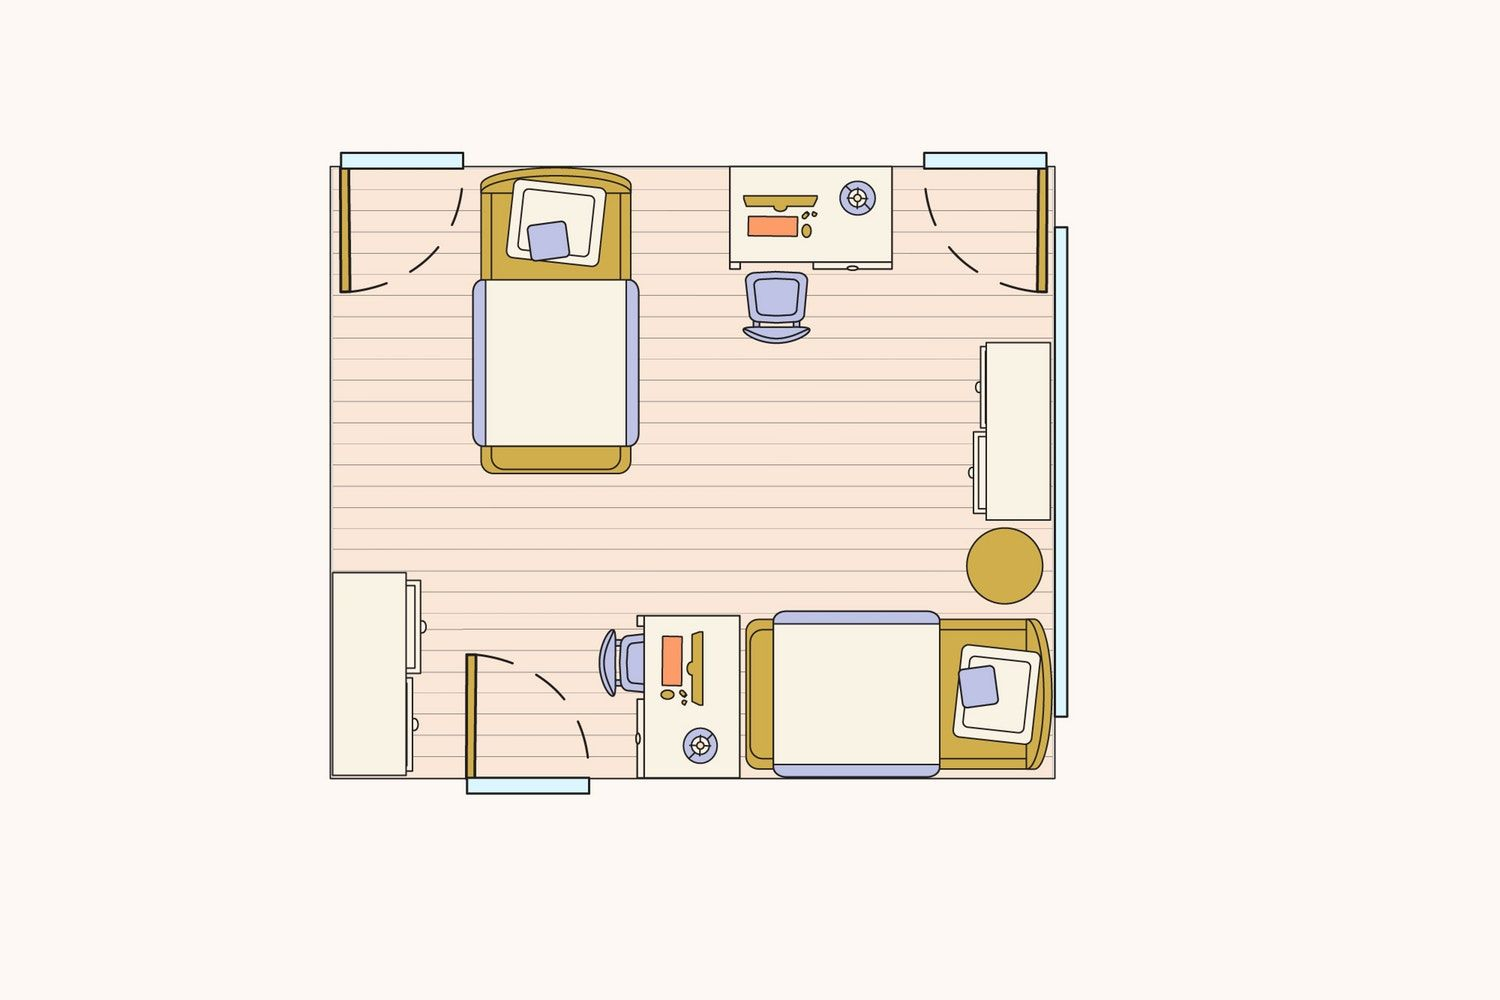 How To Layout 4 Tricky Bedroom Floorplans With Two Twin Beds Two Twin Beds Shared Girls Bedroom Child Bedroom Layout